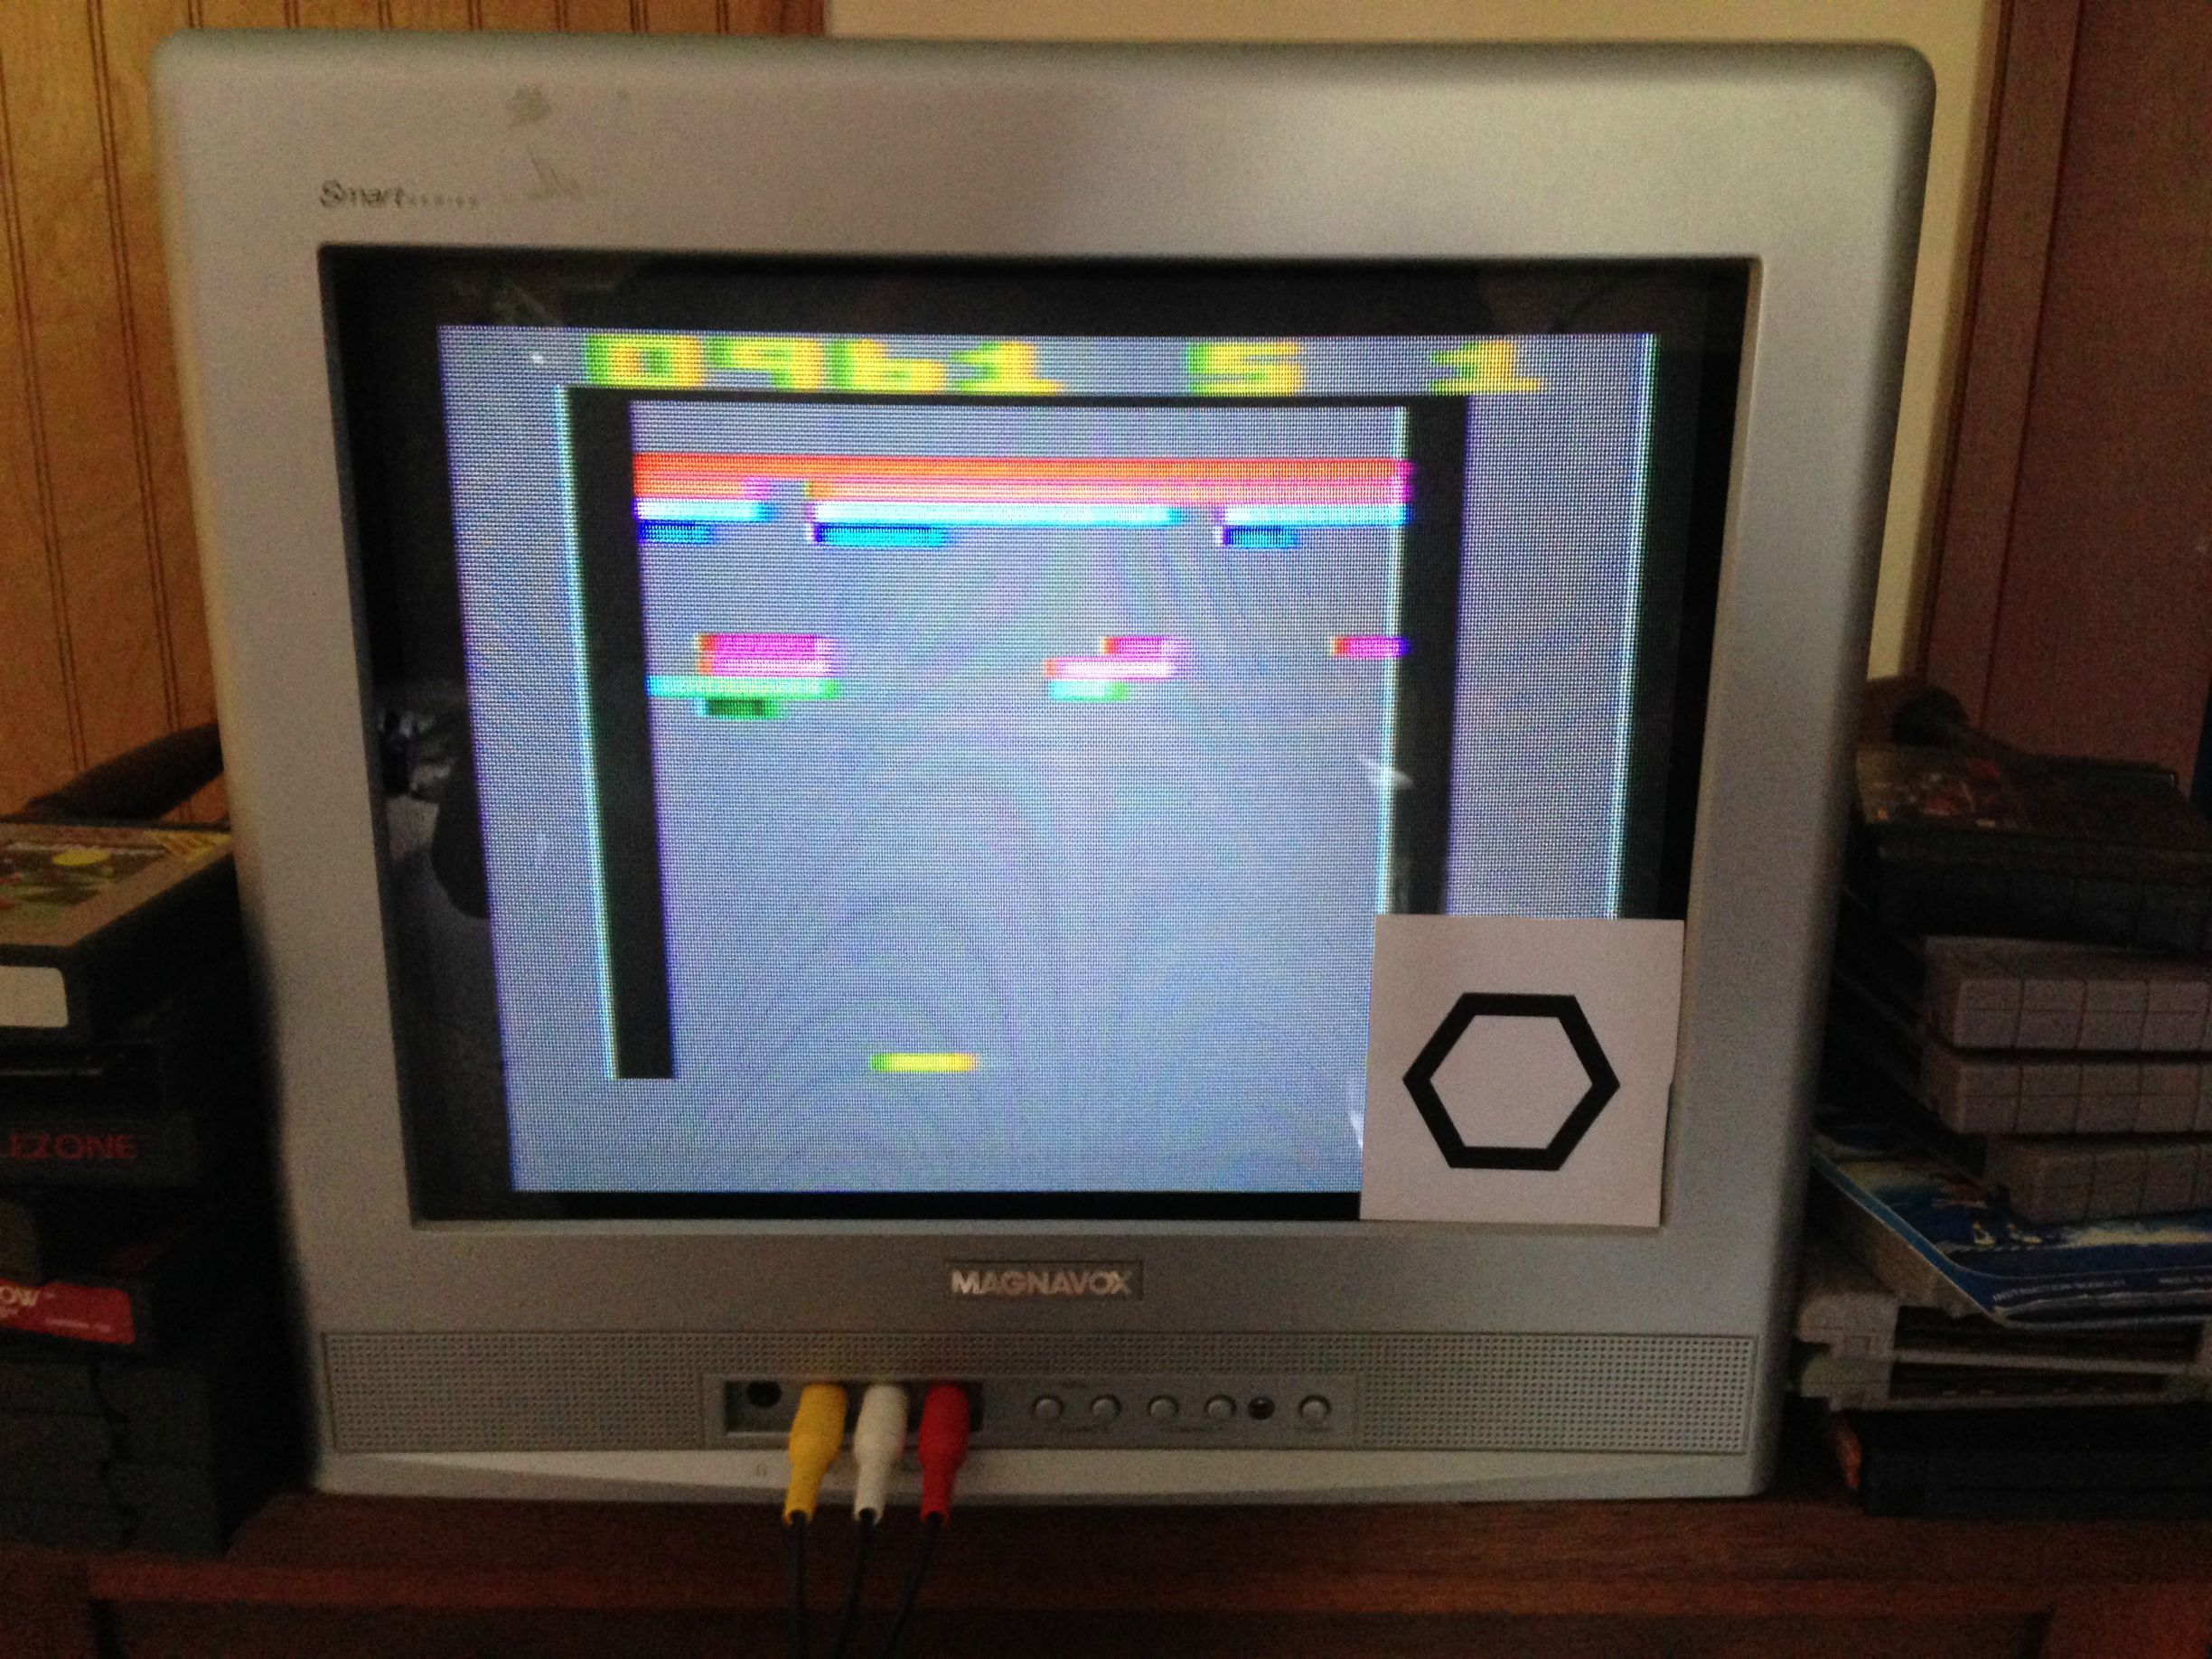 HexNash: Super Breakout: Game 7 (Atari 2600 Novice/B) 961 points on 2013-10-27 11:56:46